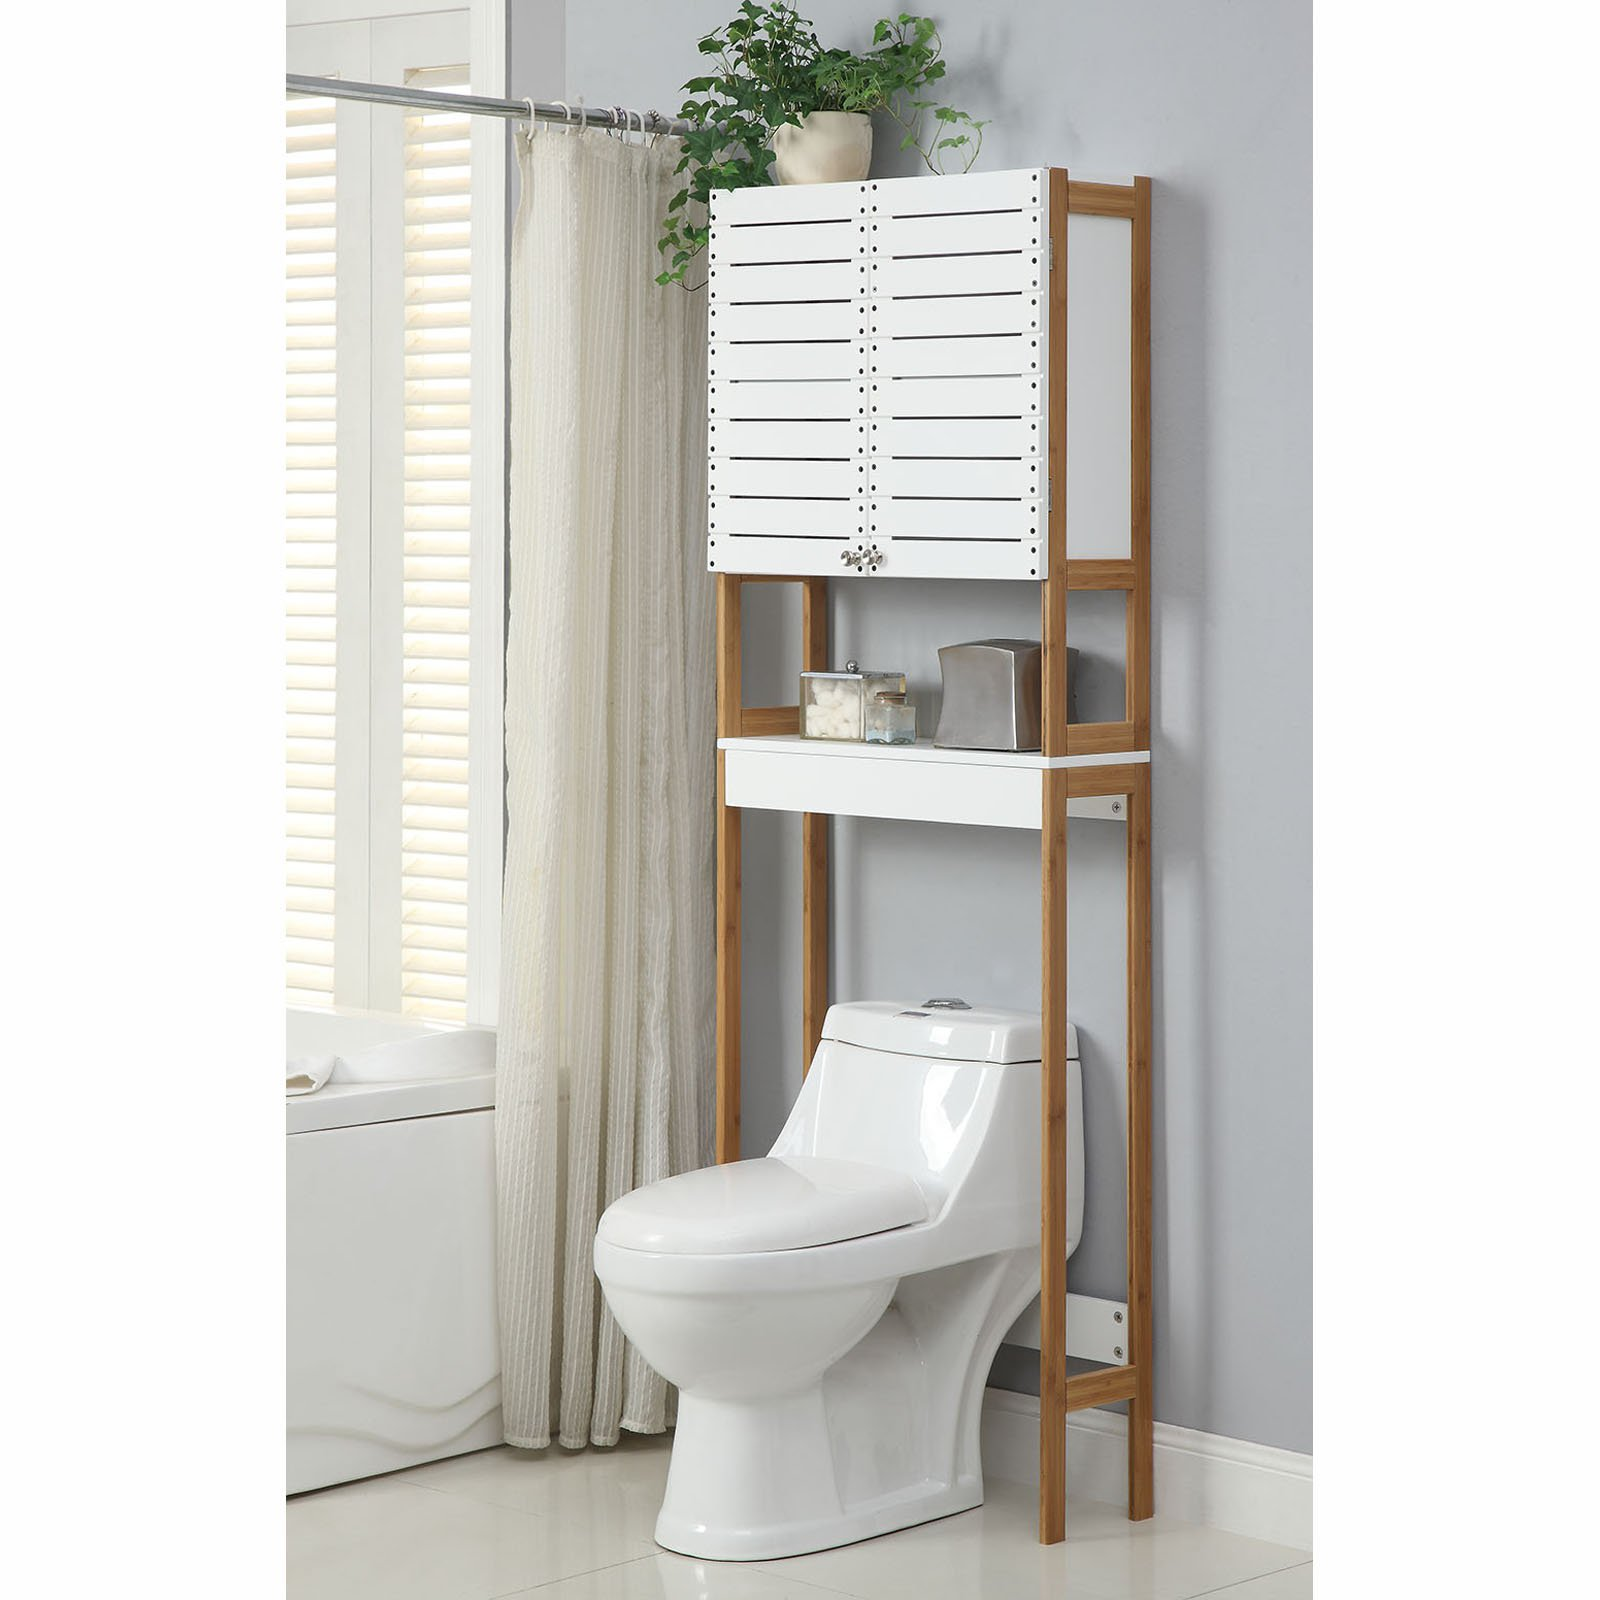 Neu Home Rendition 3-Shelf, 2-Door Bathroom Over the Toilet Space Saver